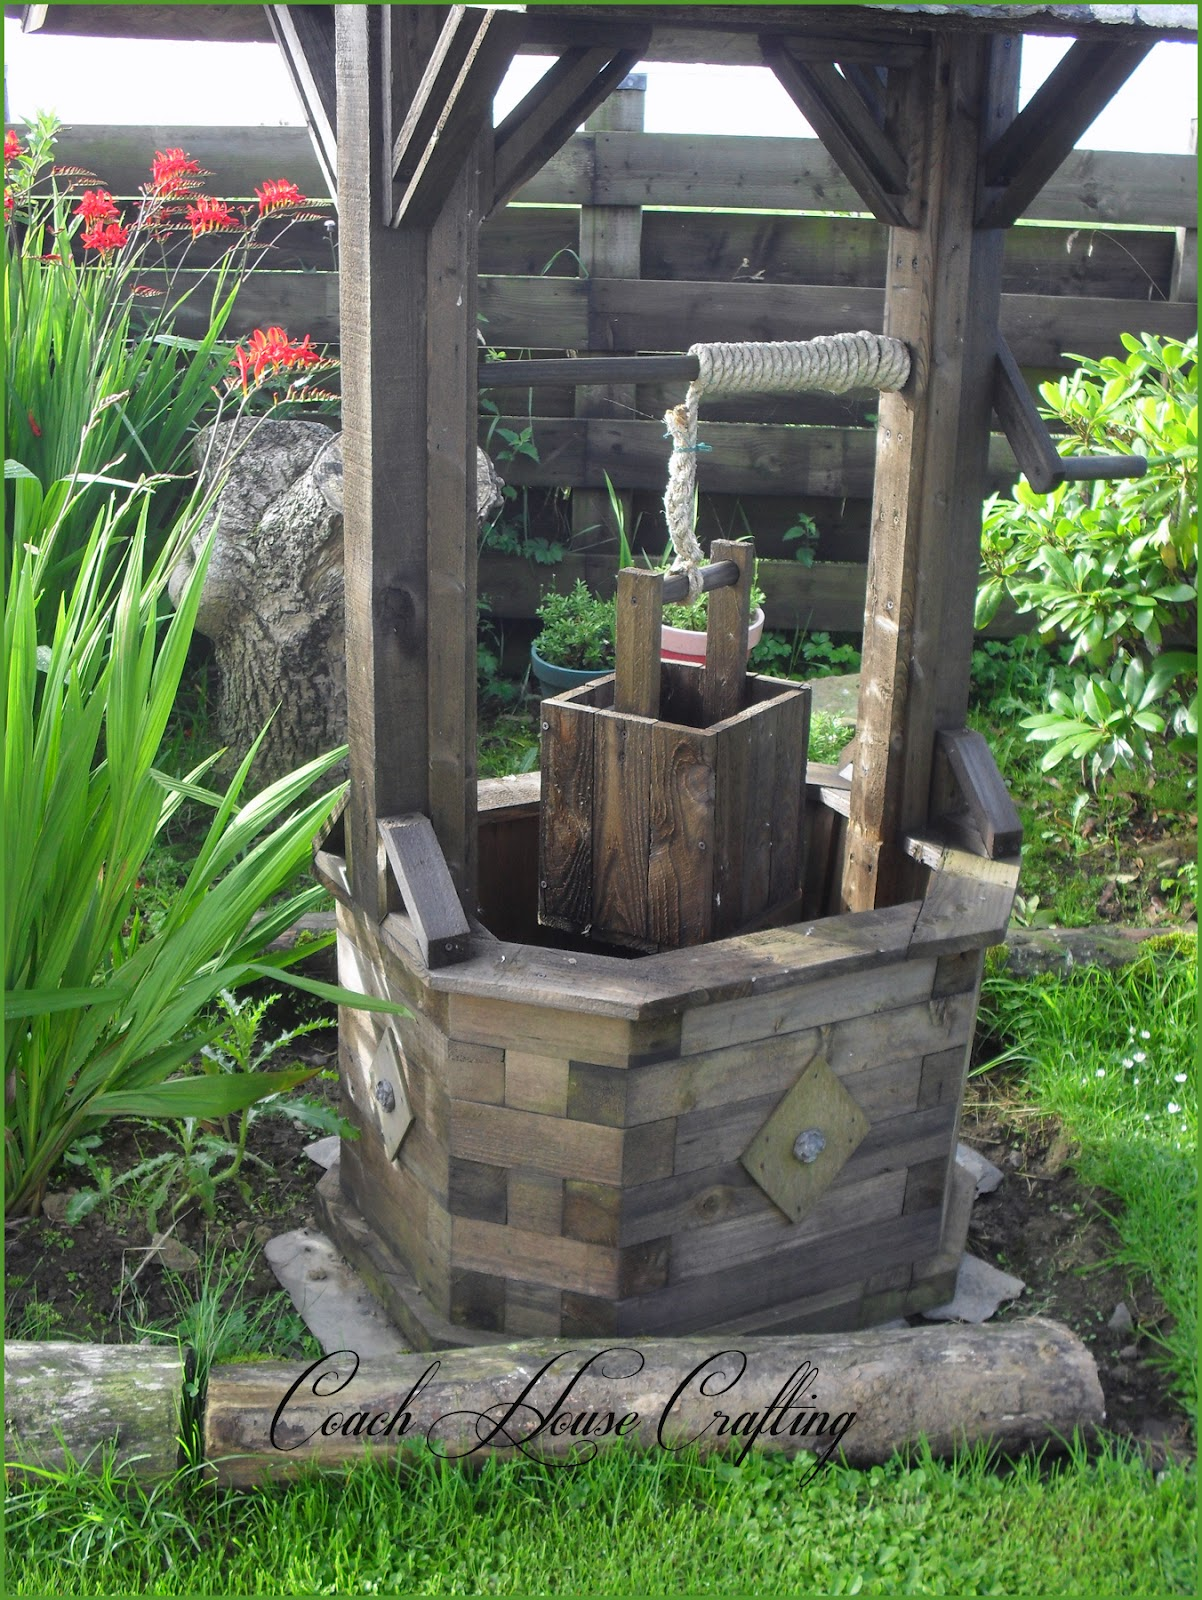 Coach house crafting on a budget for Garden well designs